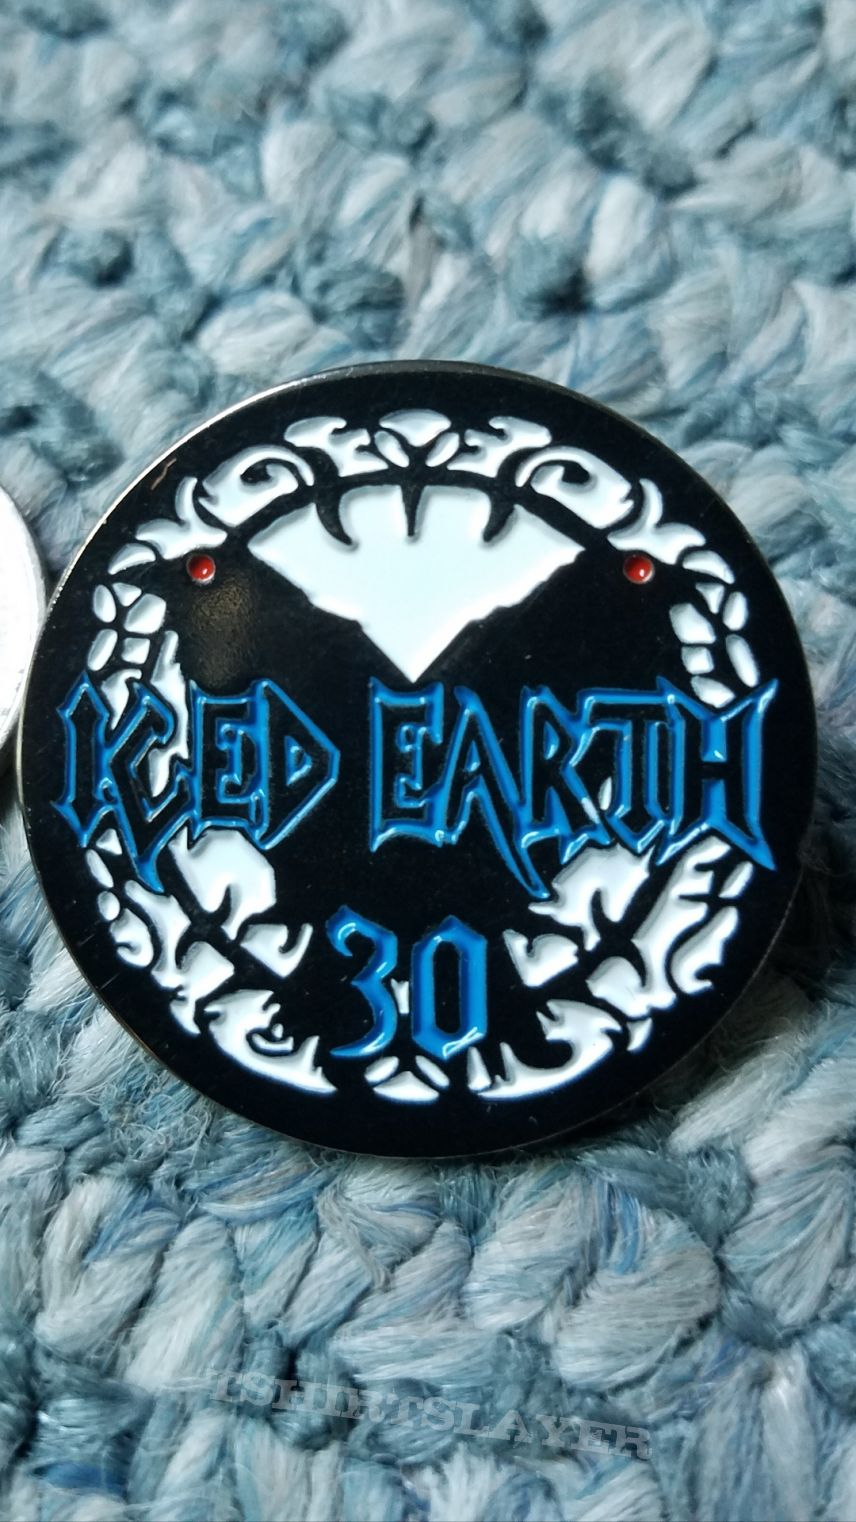 Iced Earth 30th Aniversary Limited Edition Enamel Pins